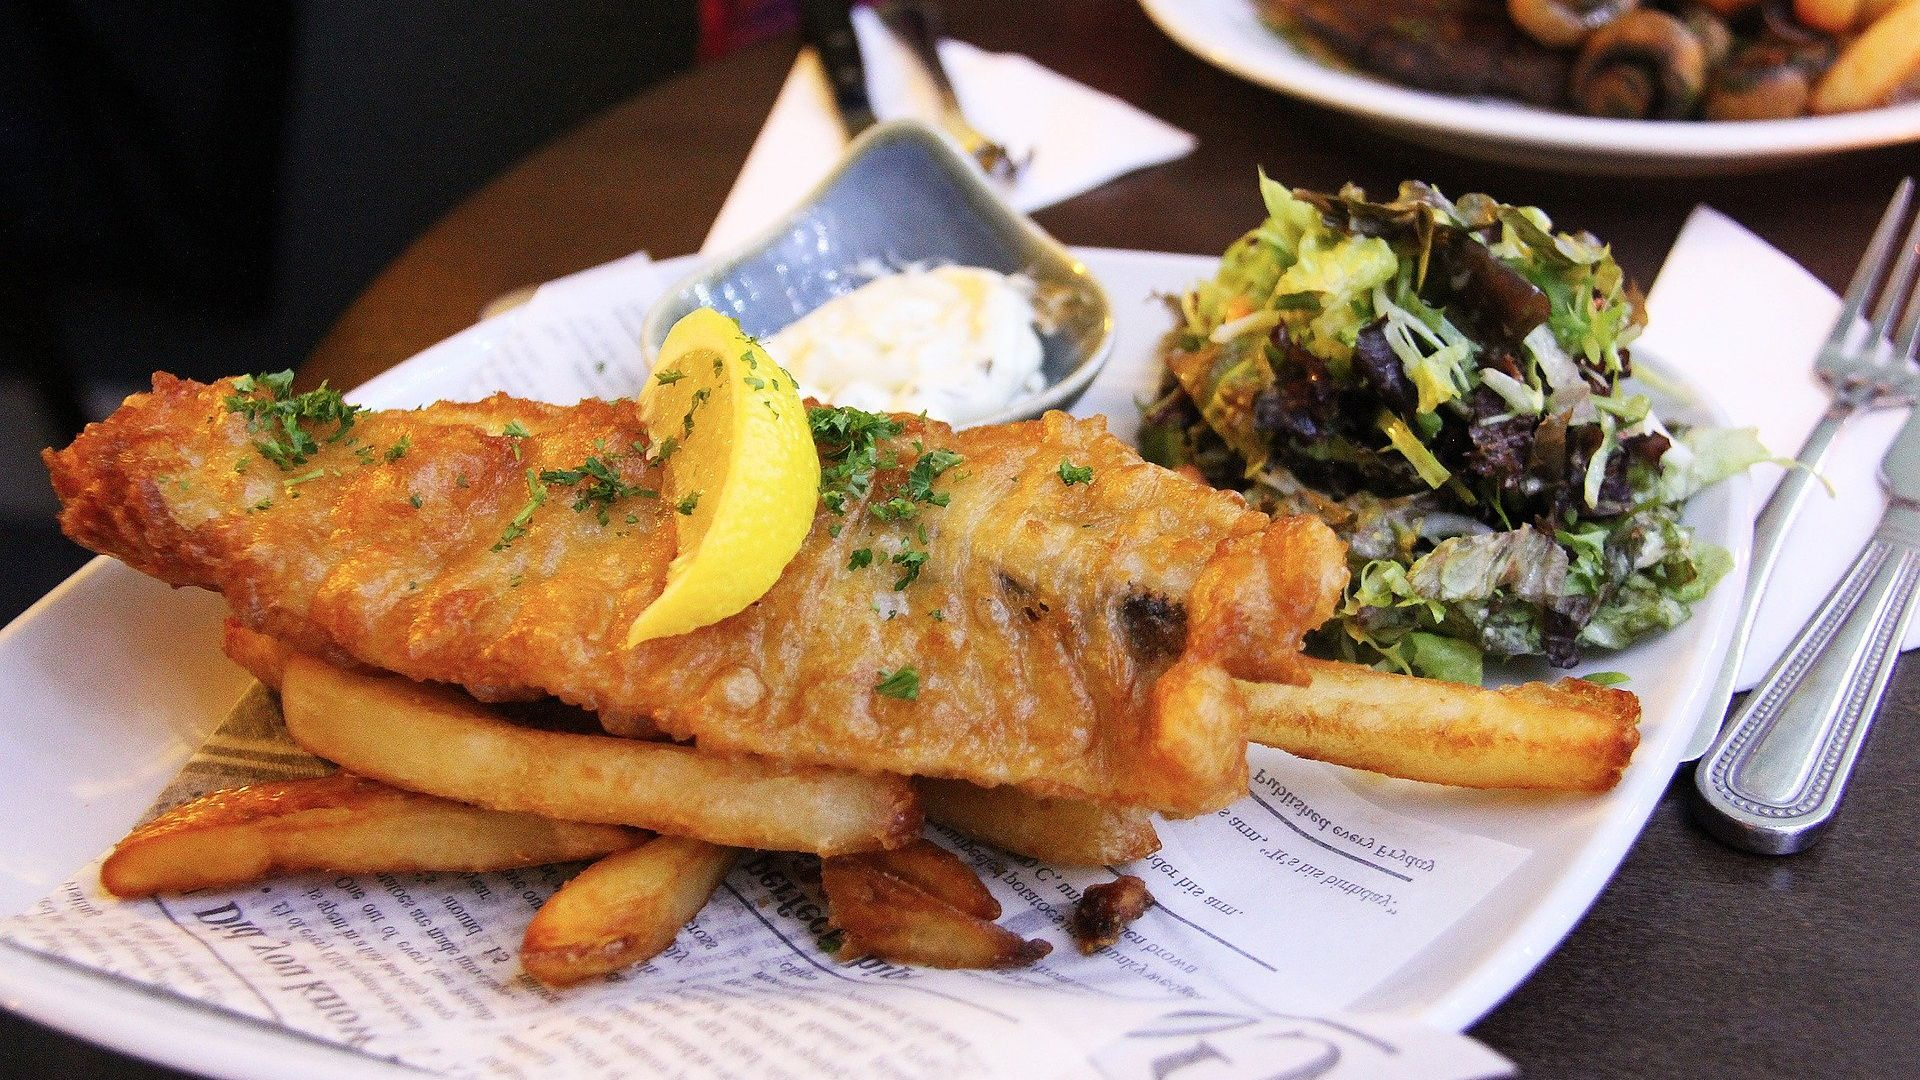 Man who travelled over 60 miles for fish and chips in Norfolk fined